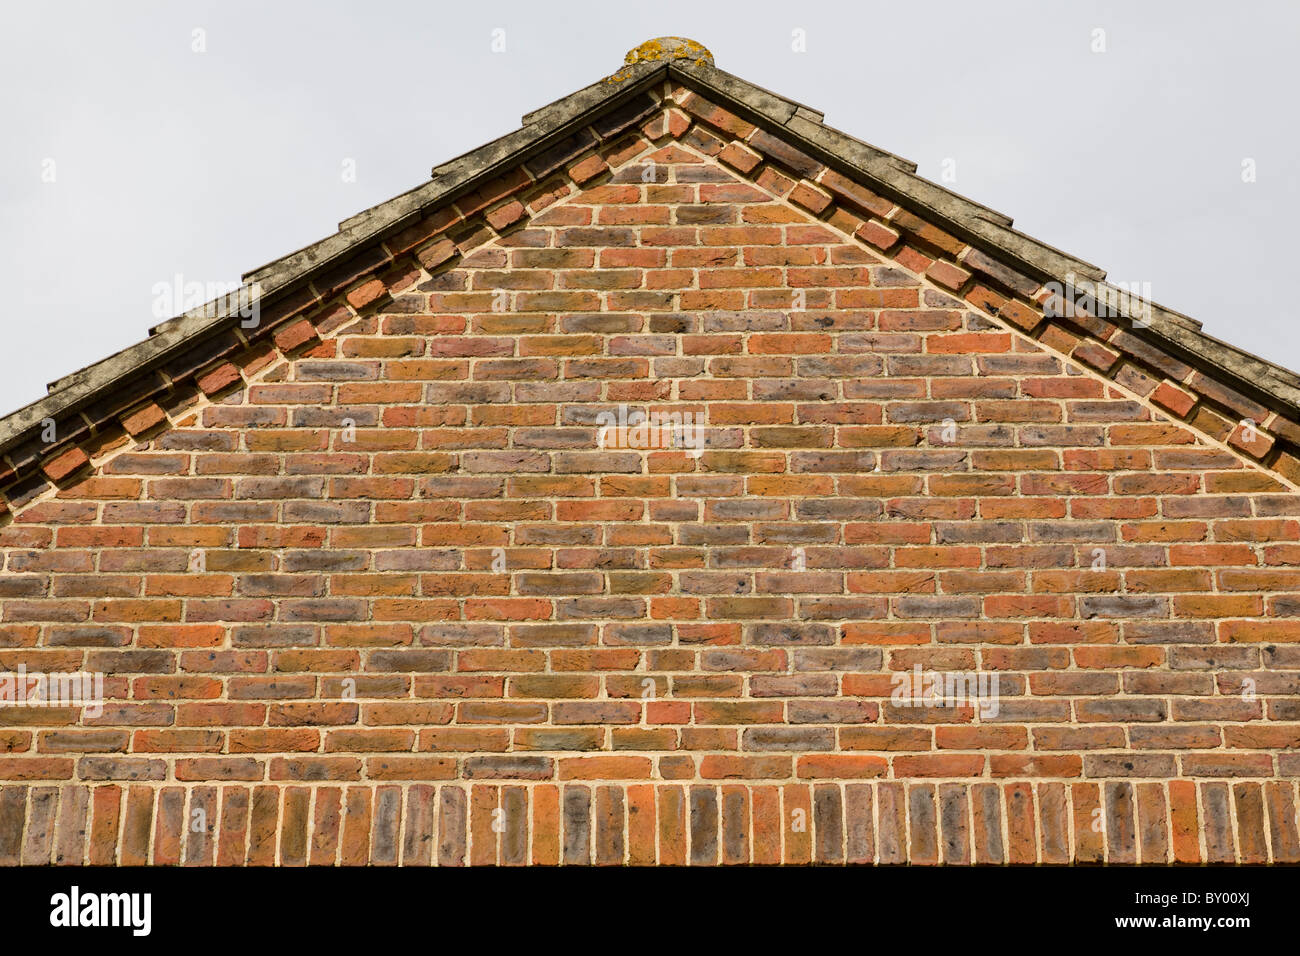 The Gable End Of A House Roof Showing Brick Decorative